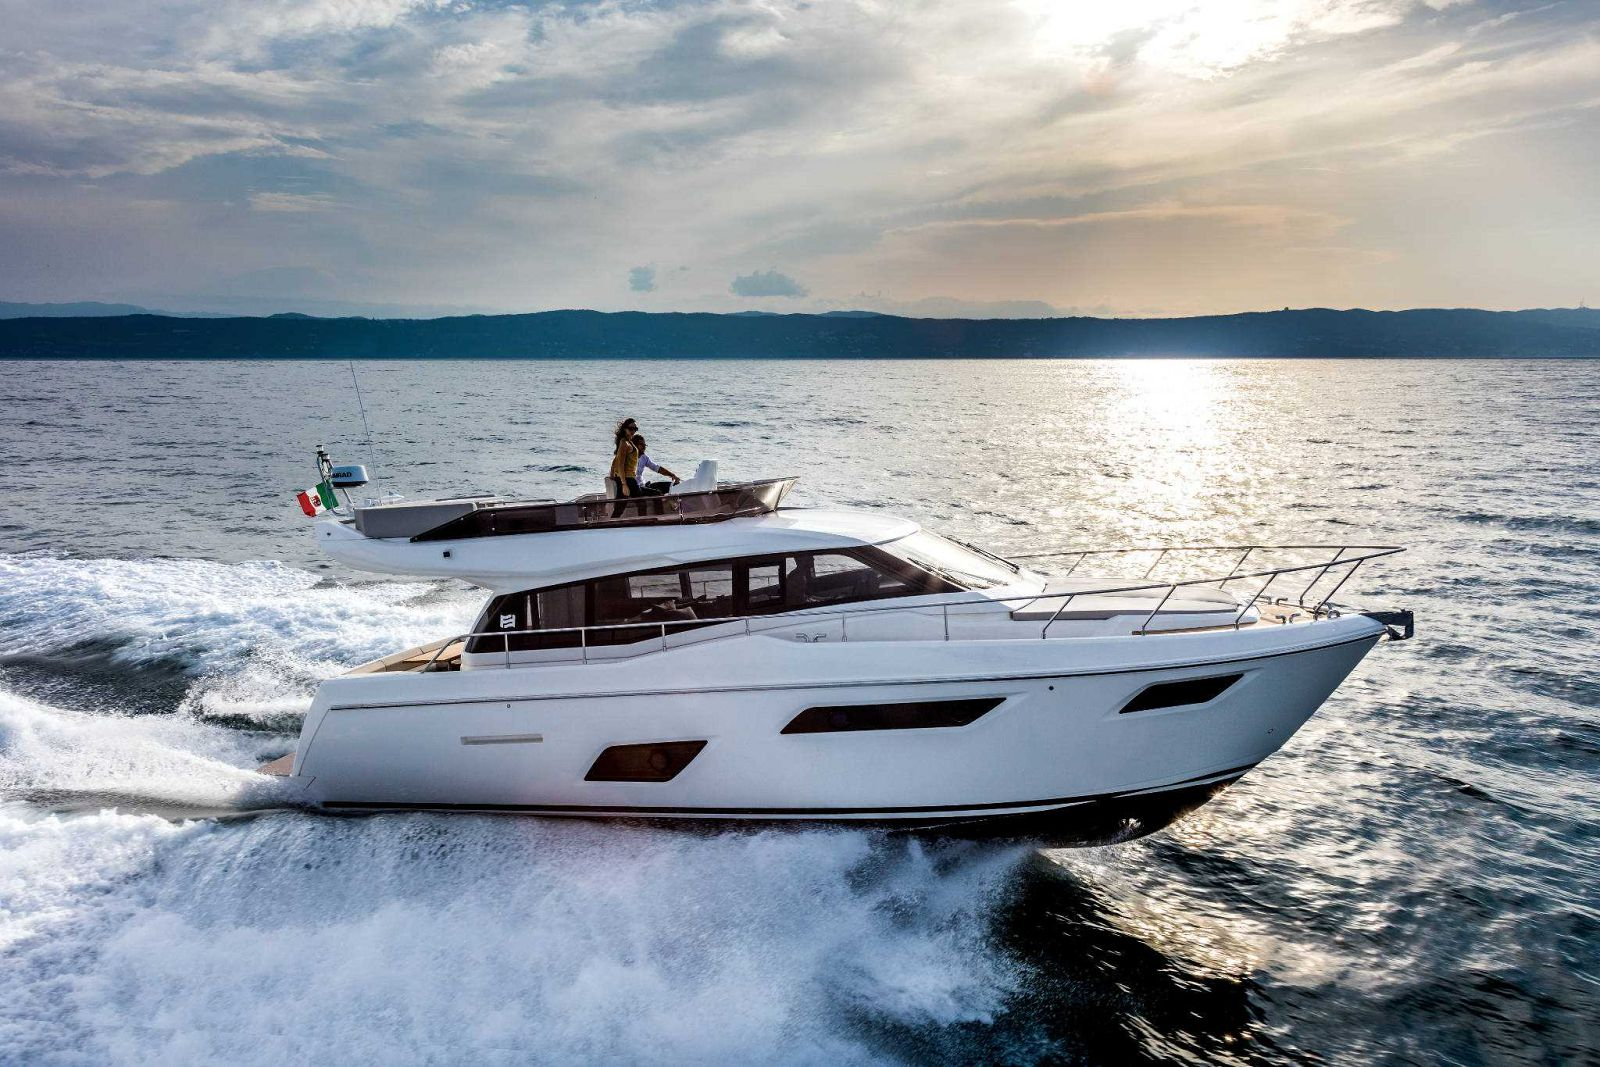 Ferretti Yachts 450 Exterior Running Shot - New Luxury Yacht for Sale >